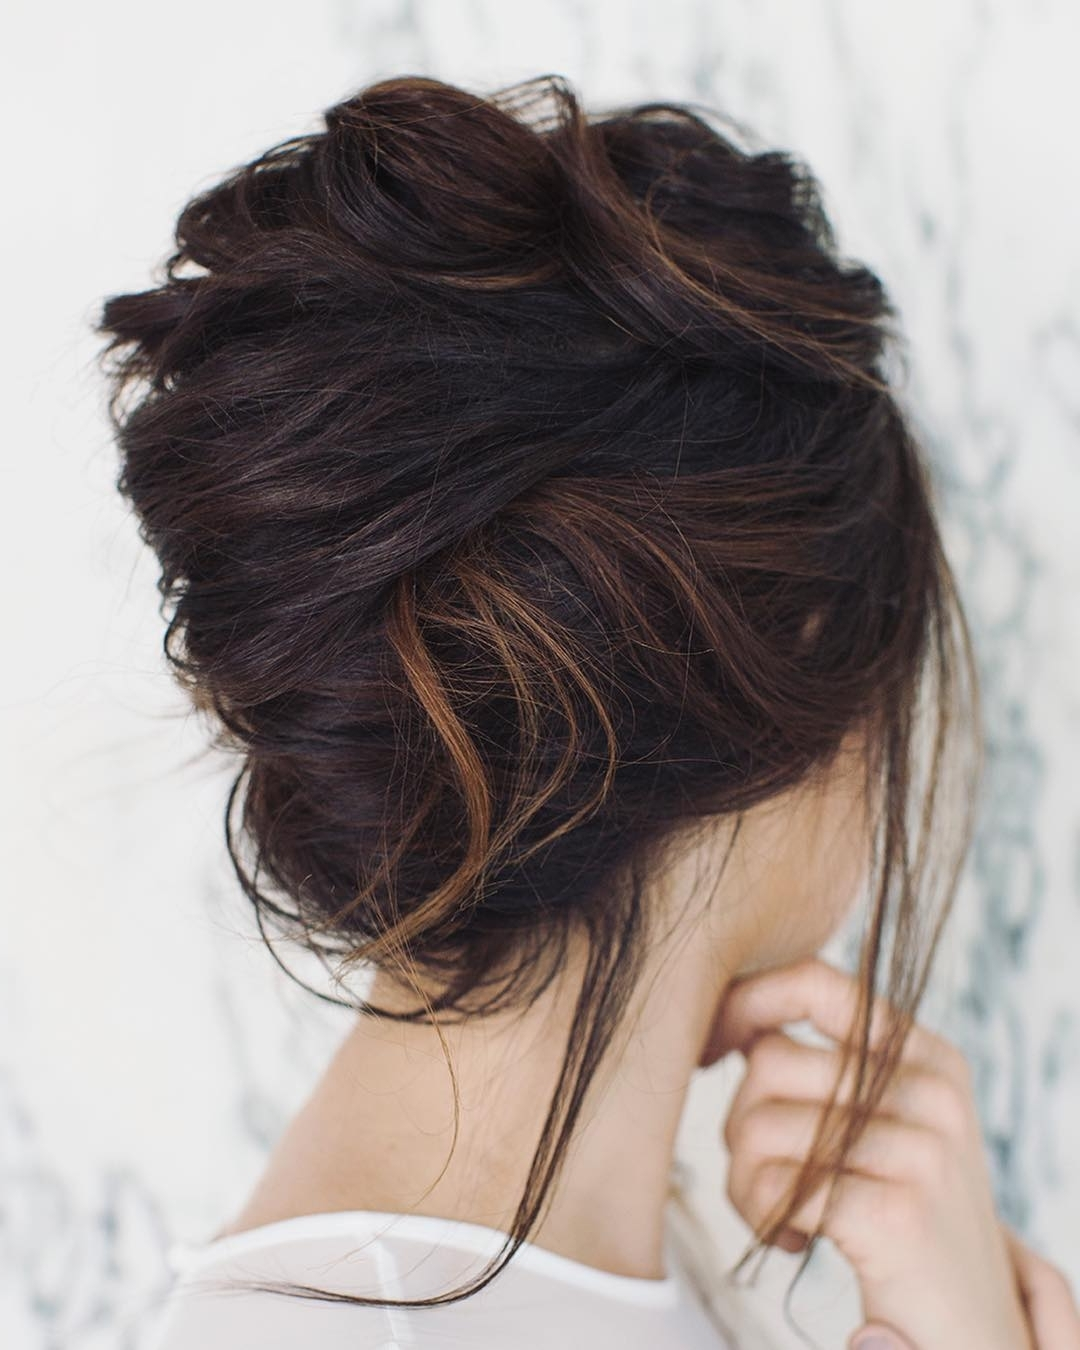 10 Gorgeous Prom Updos For Long Hair, Prom Updo Hairstyles 2021 Easy Hairstyles For Medium Length Hair For Prom